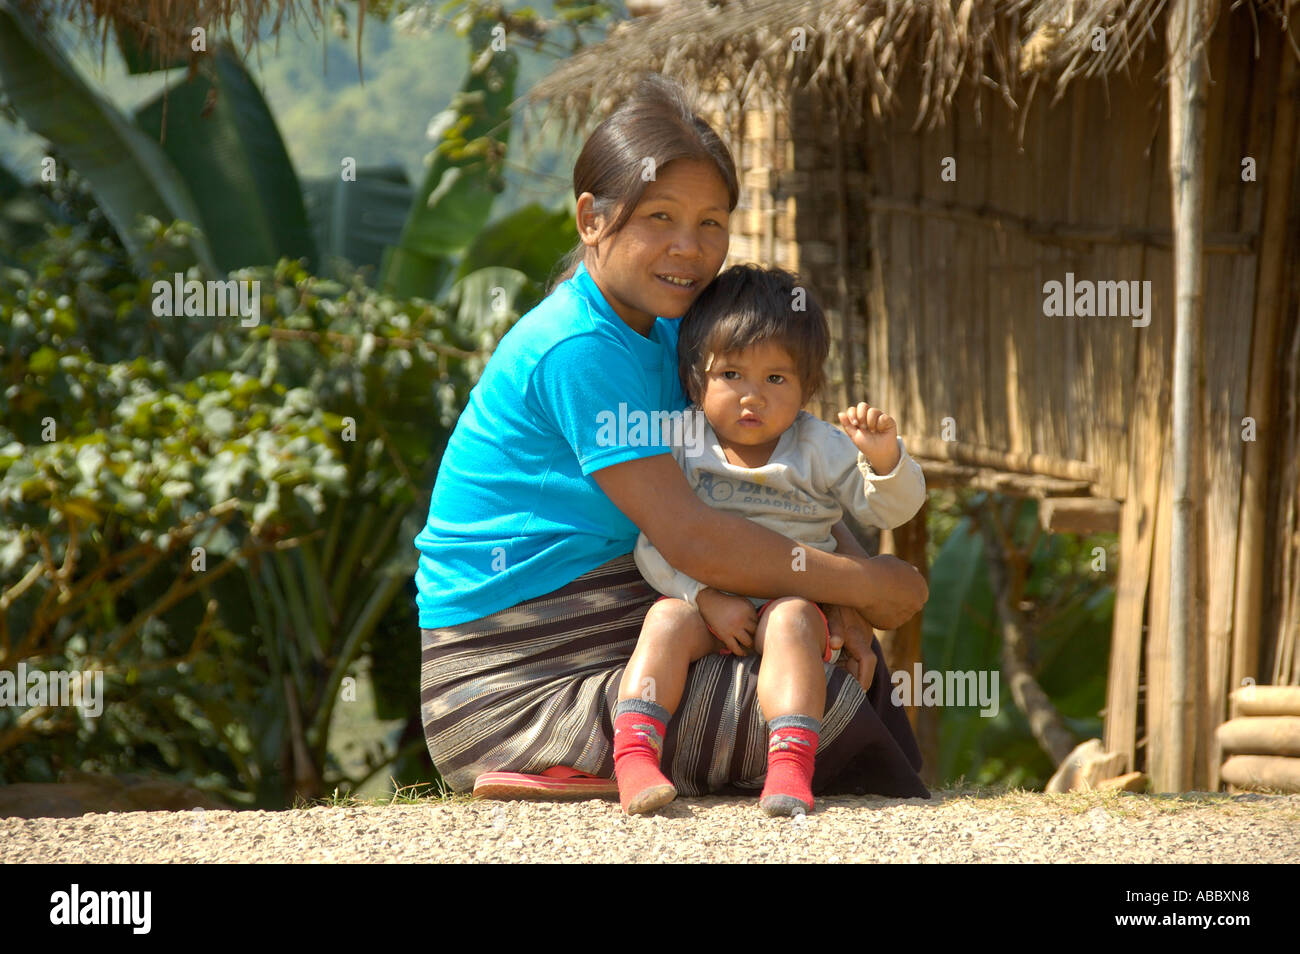 Smiling mother carries child in her arms Laos - Stock Image